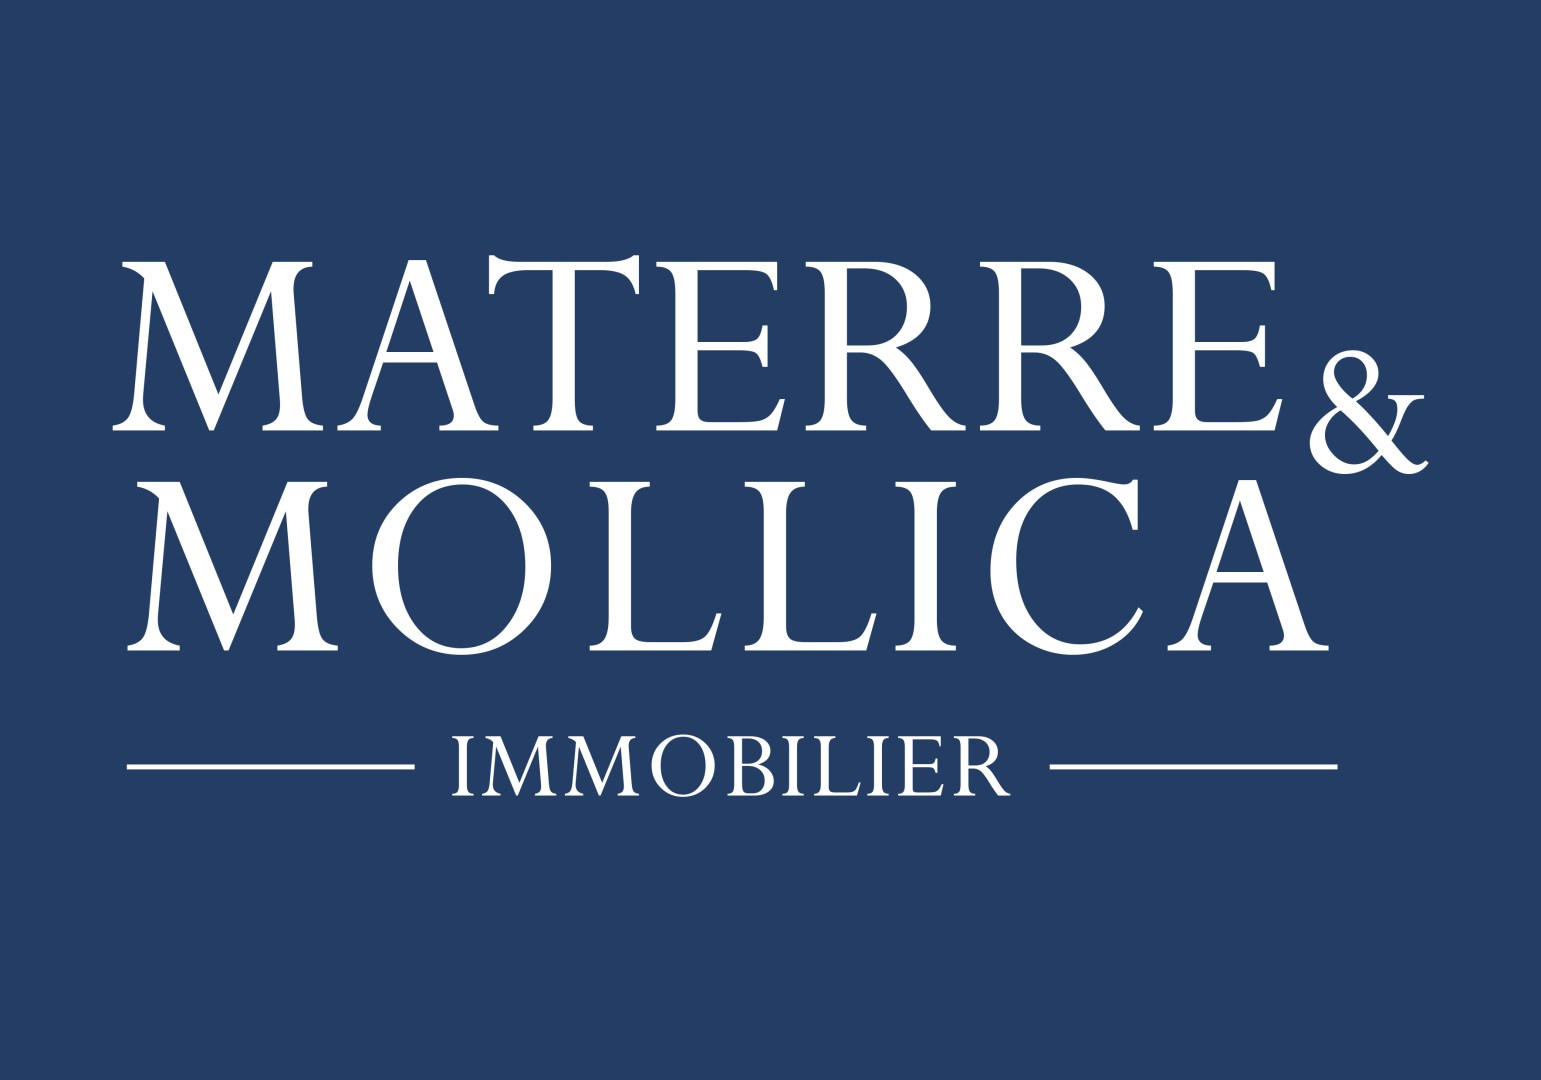 Materre et mollica immobilier agence immobili re de luxe for Agence immobiliere 75006